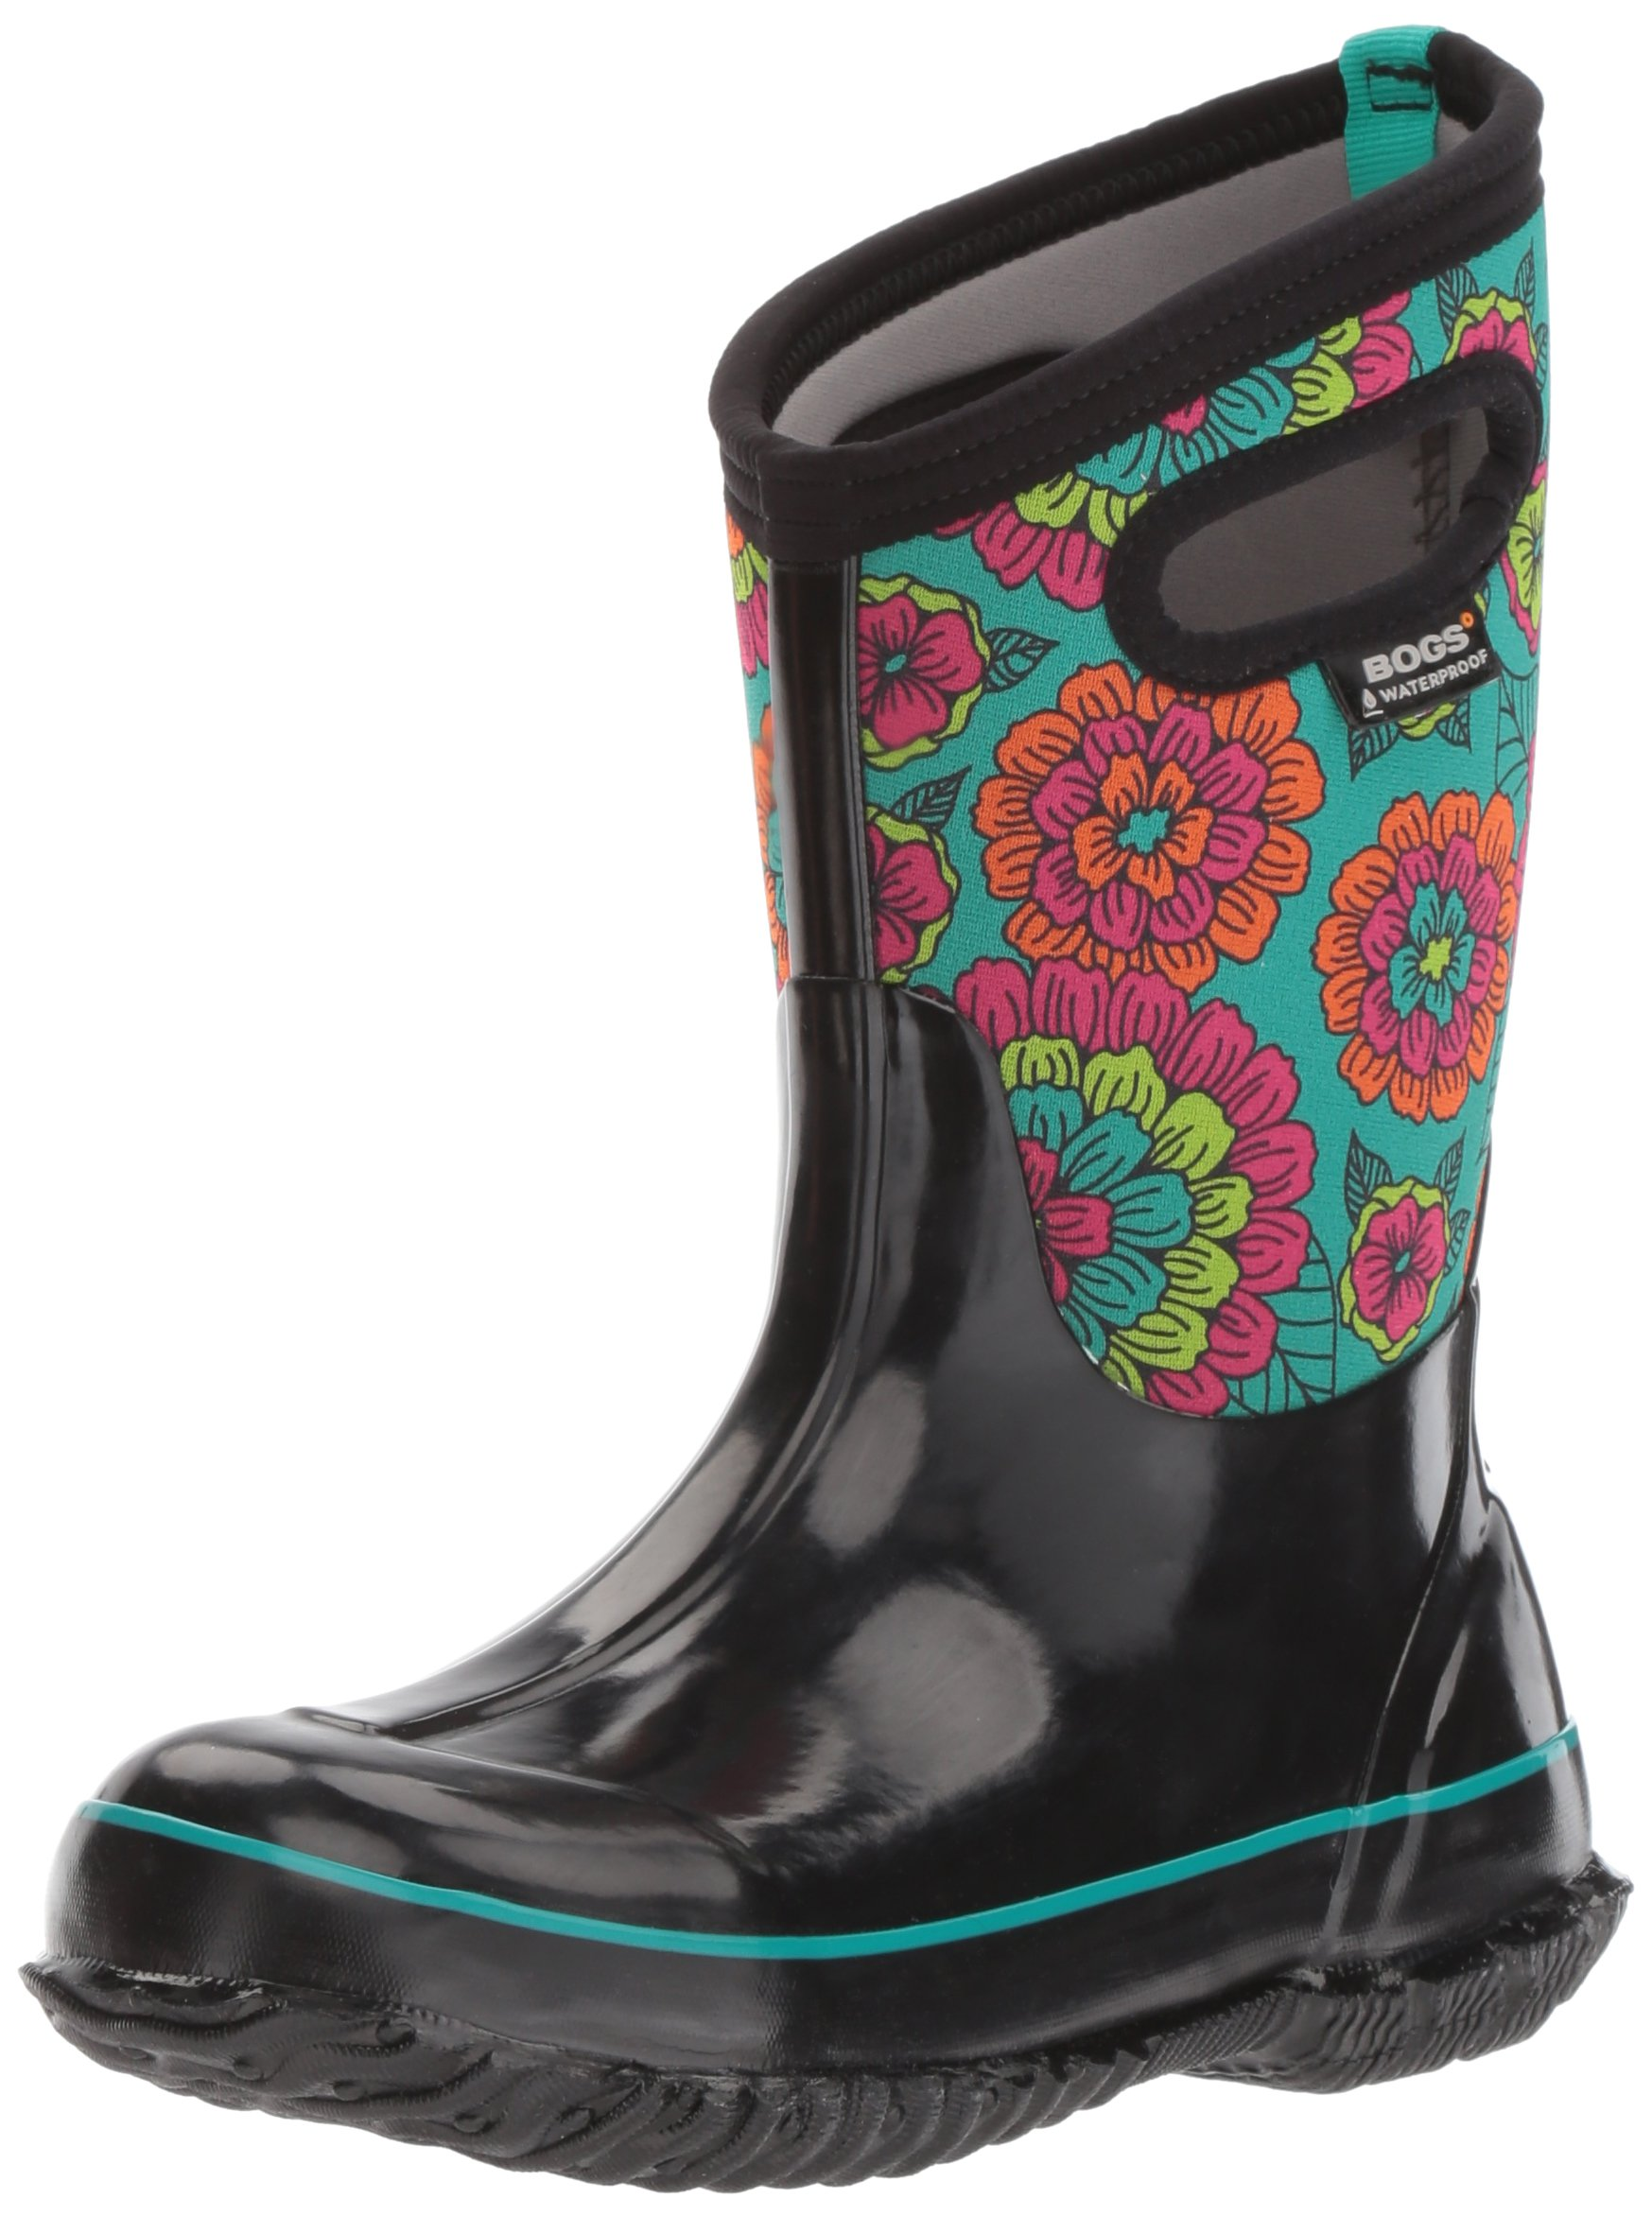 10132696e76 Bogs Kids Classic High Waterproof Insulated Rubber Rain and Winter Snow Boot  for Boys